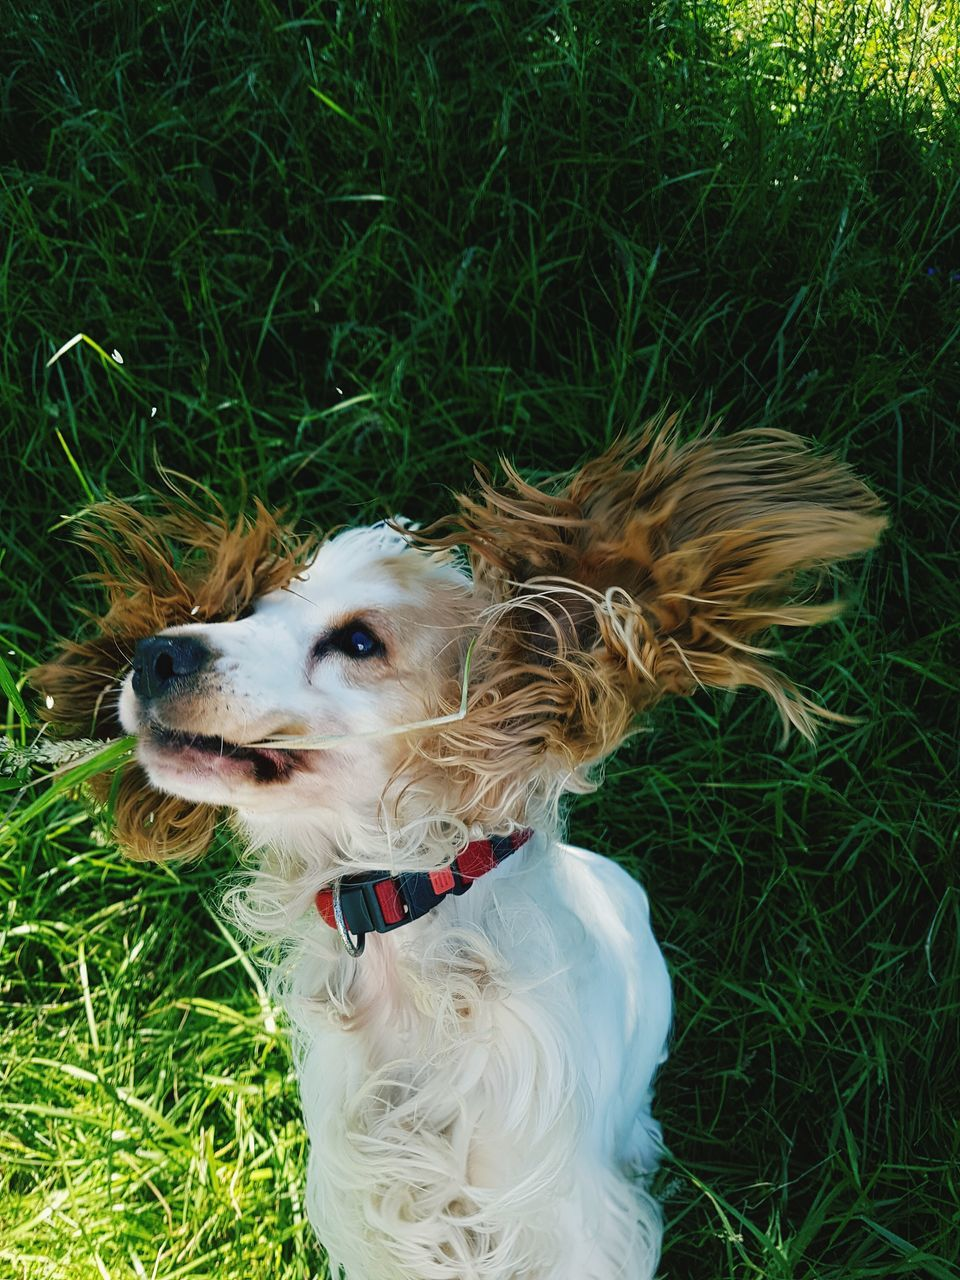 dog, grass, pets, one animal, domestic animals, animal themes, mammal, green color, field, outdoors, day, nature, no people, close-up